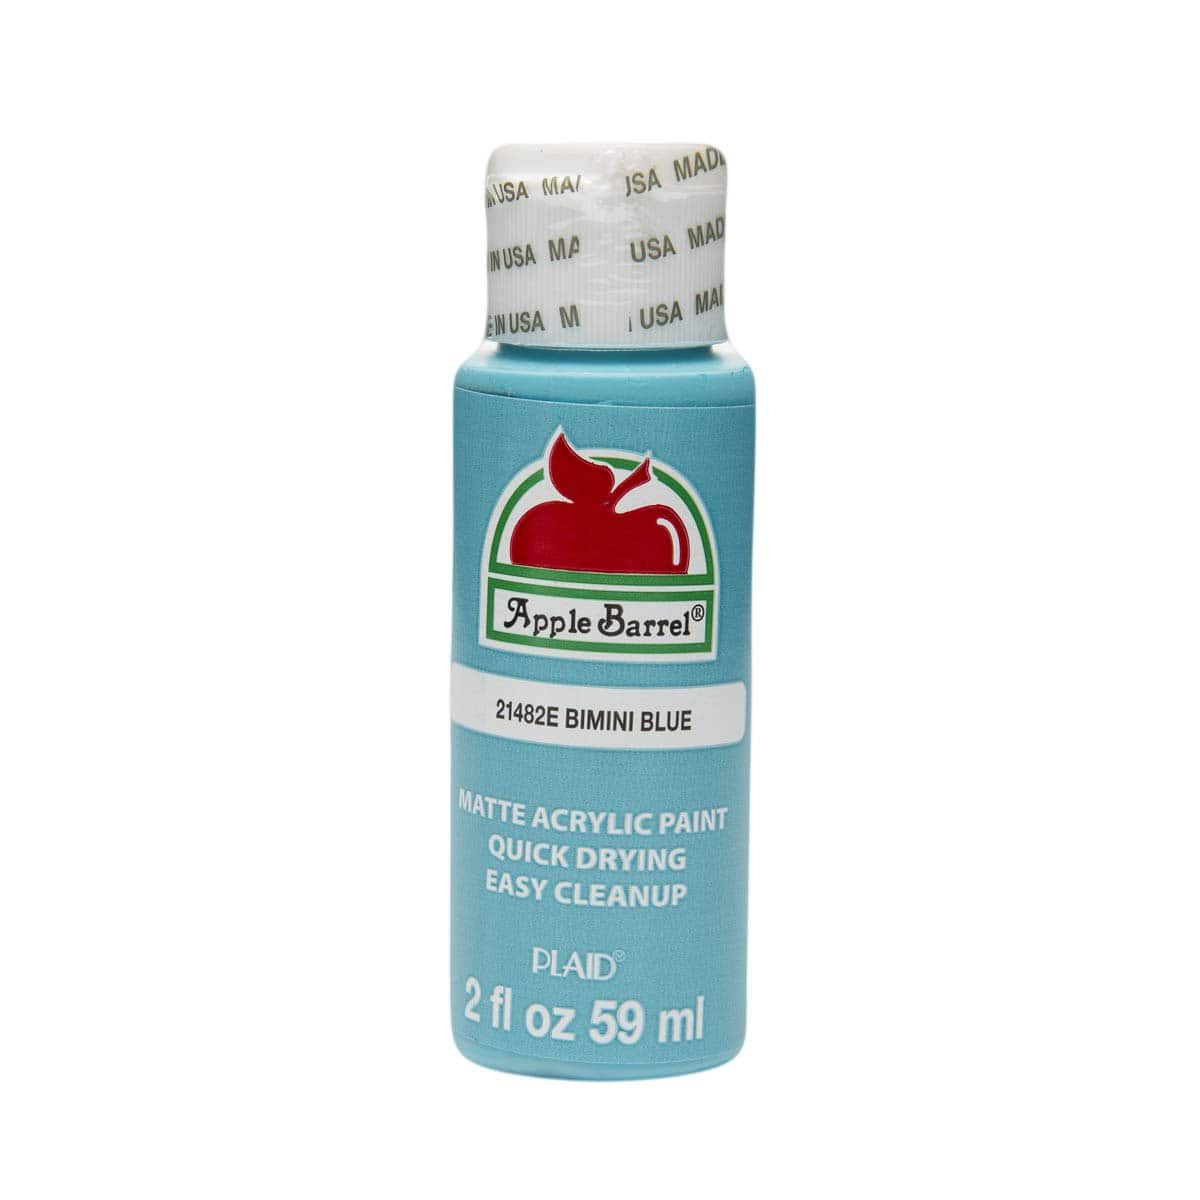 2-Oz Apple Barrel Acrylic Paint $0.50 + Free Shipping w/ Prime or on $25+